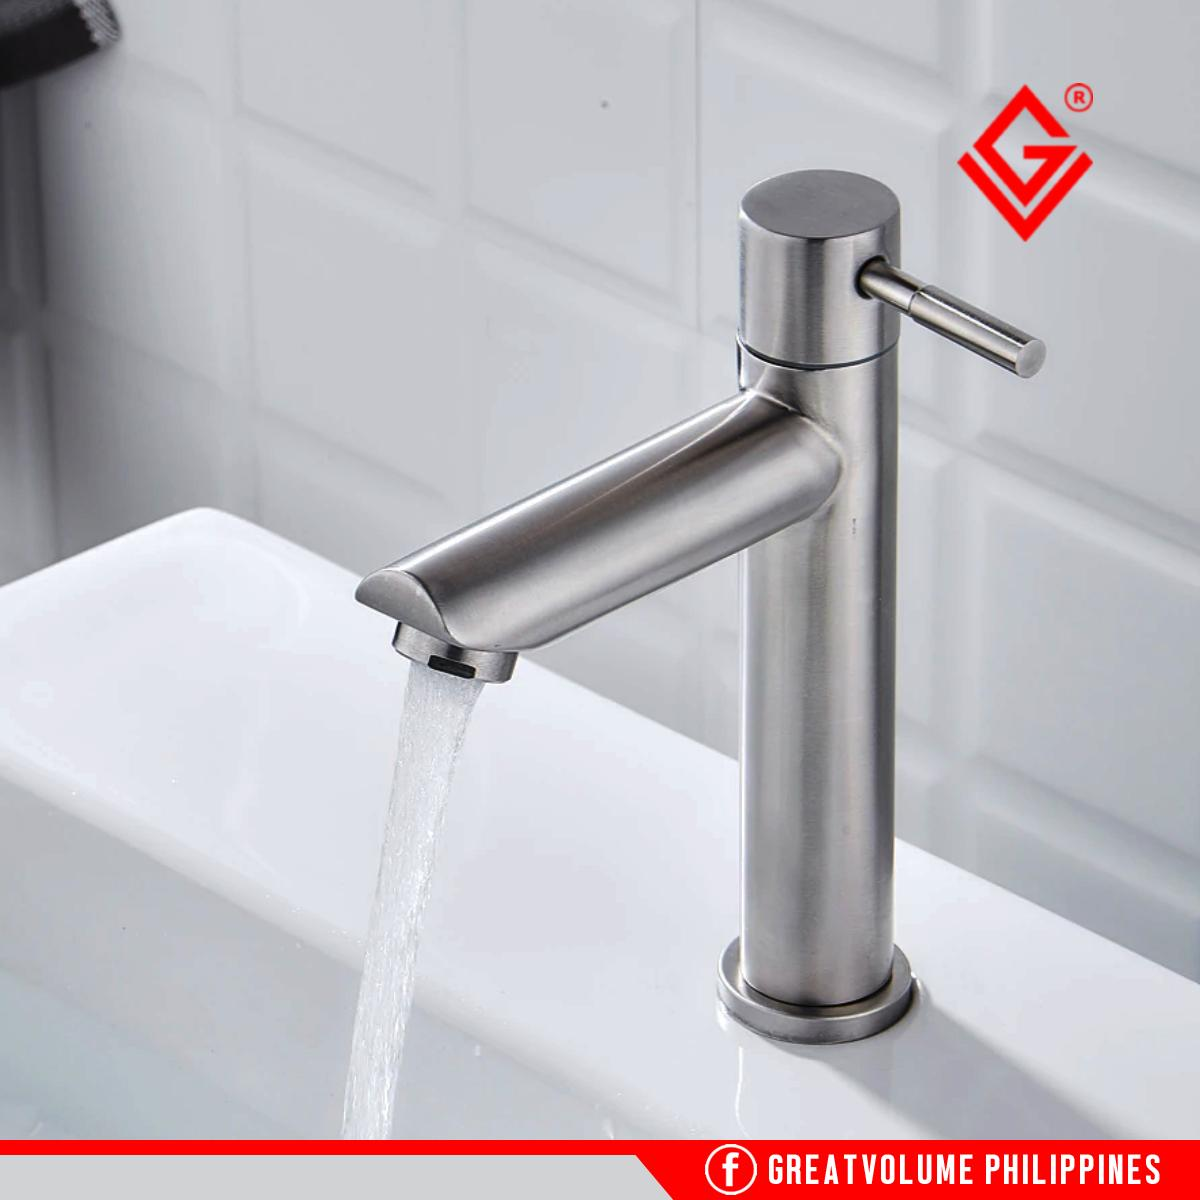 GV LX6601- LT SS304 Stainless Basin Cold Tap Faucet Gripo Kitchen Sink  Shower